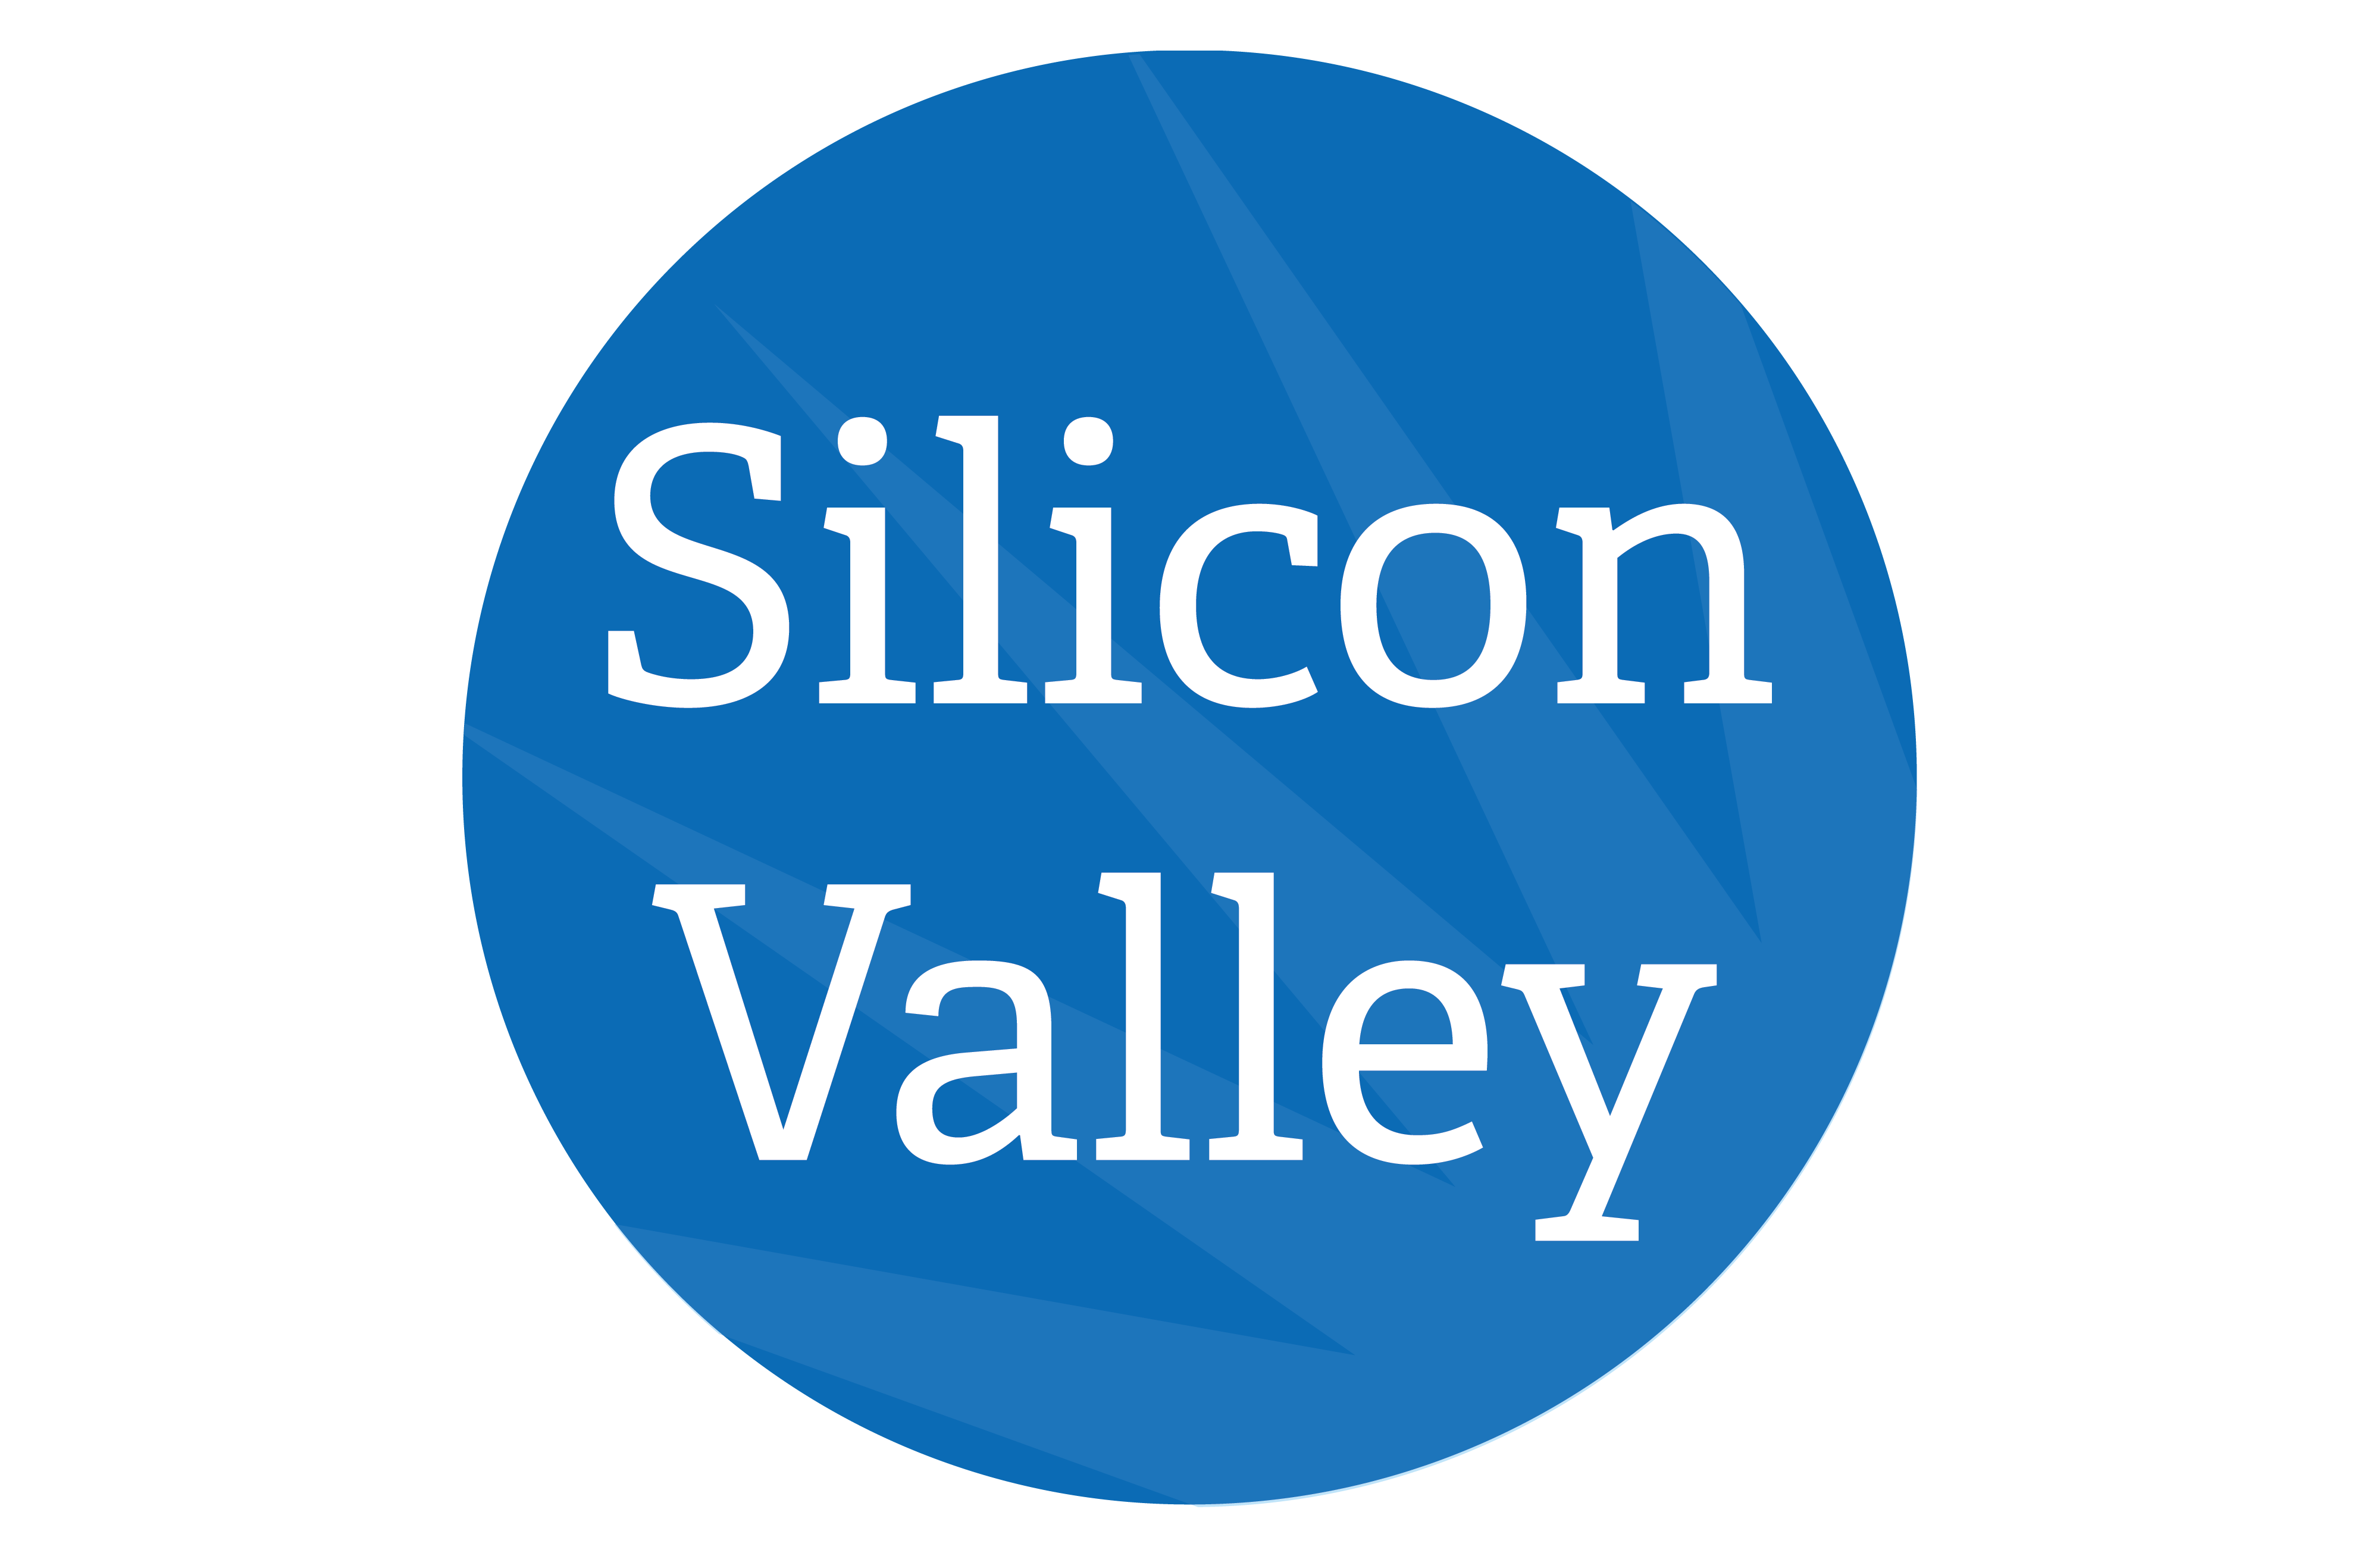 Silicon Valley Programs